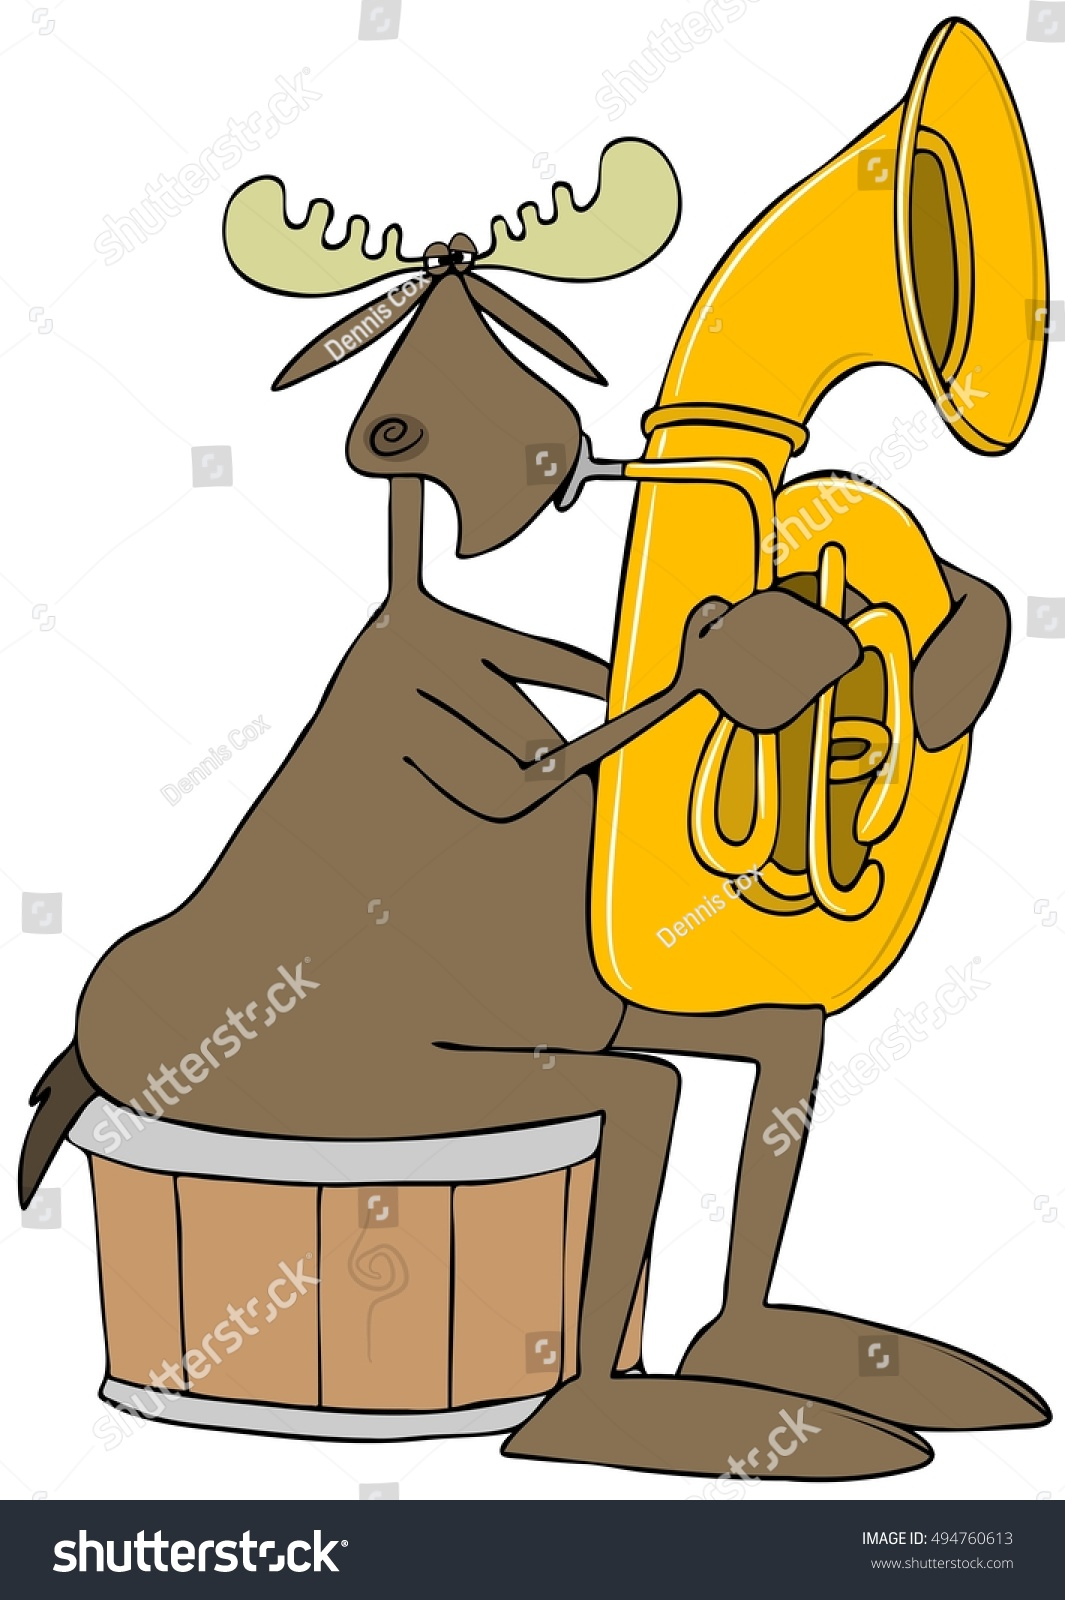 hight resolution of illustration of a bull moose sitting on a half barrel and playing a brass tuba